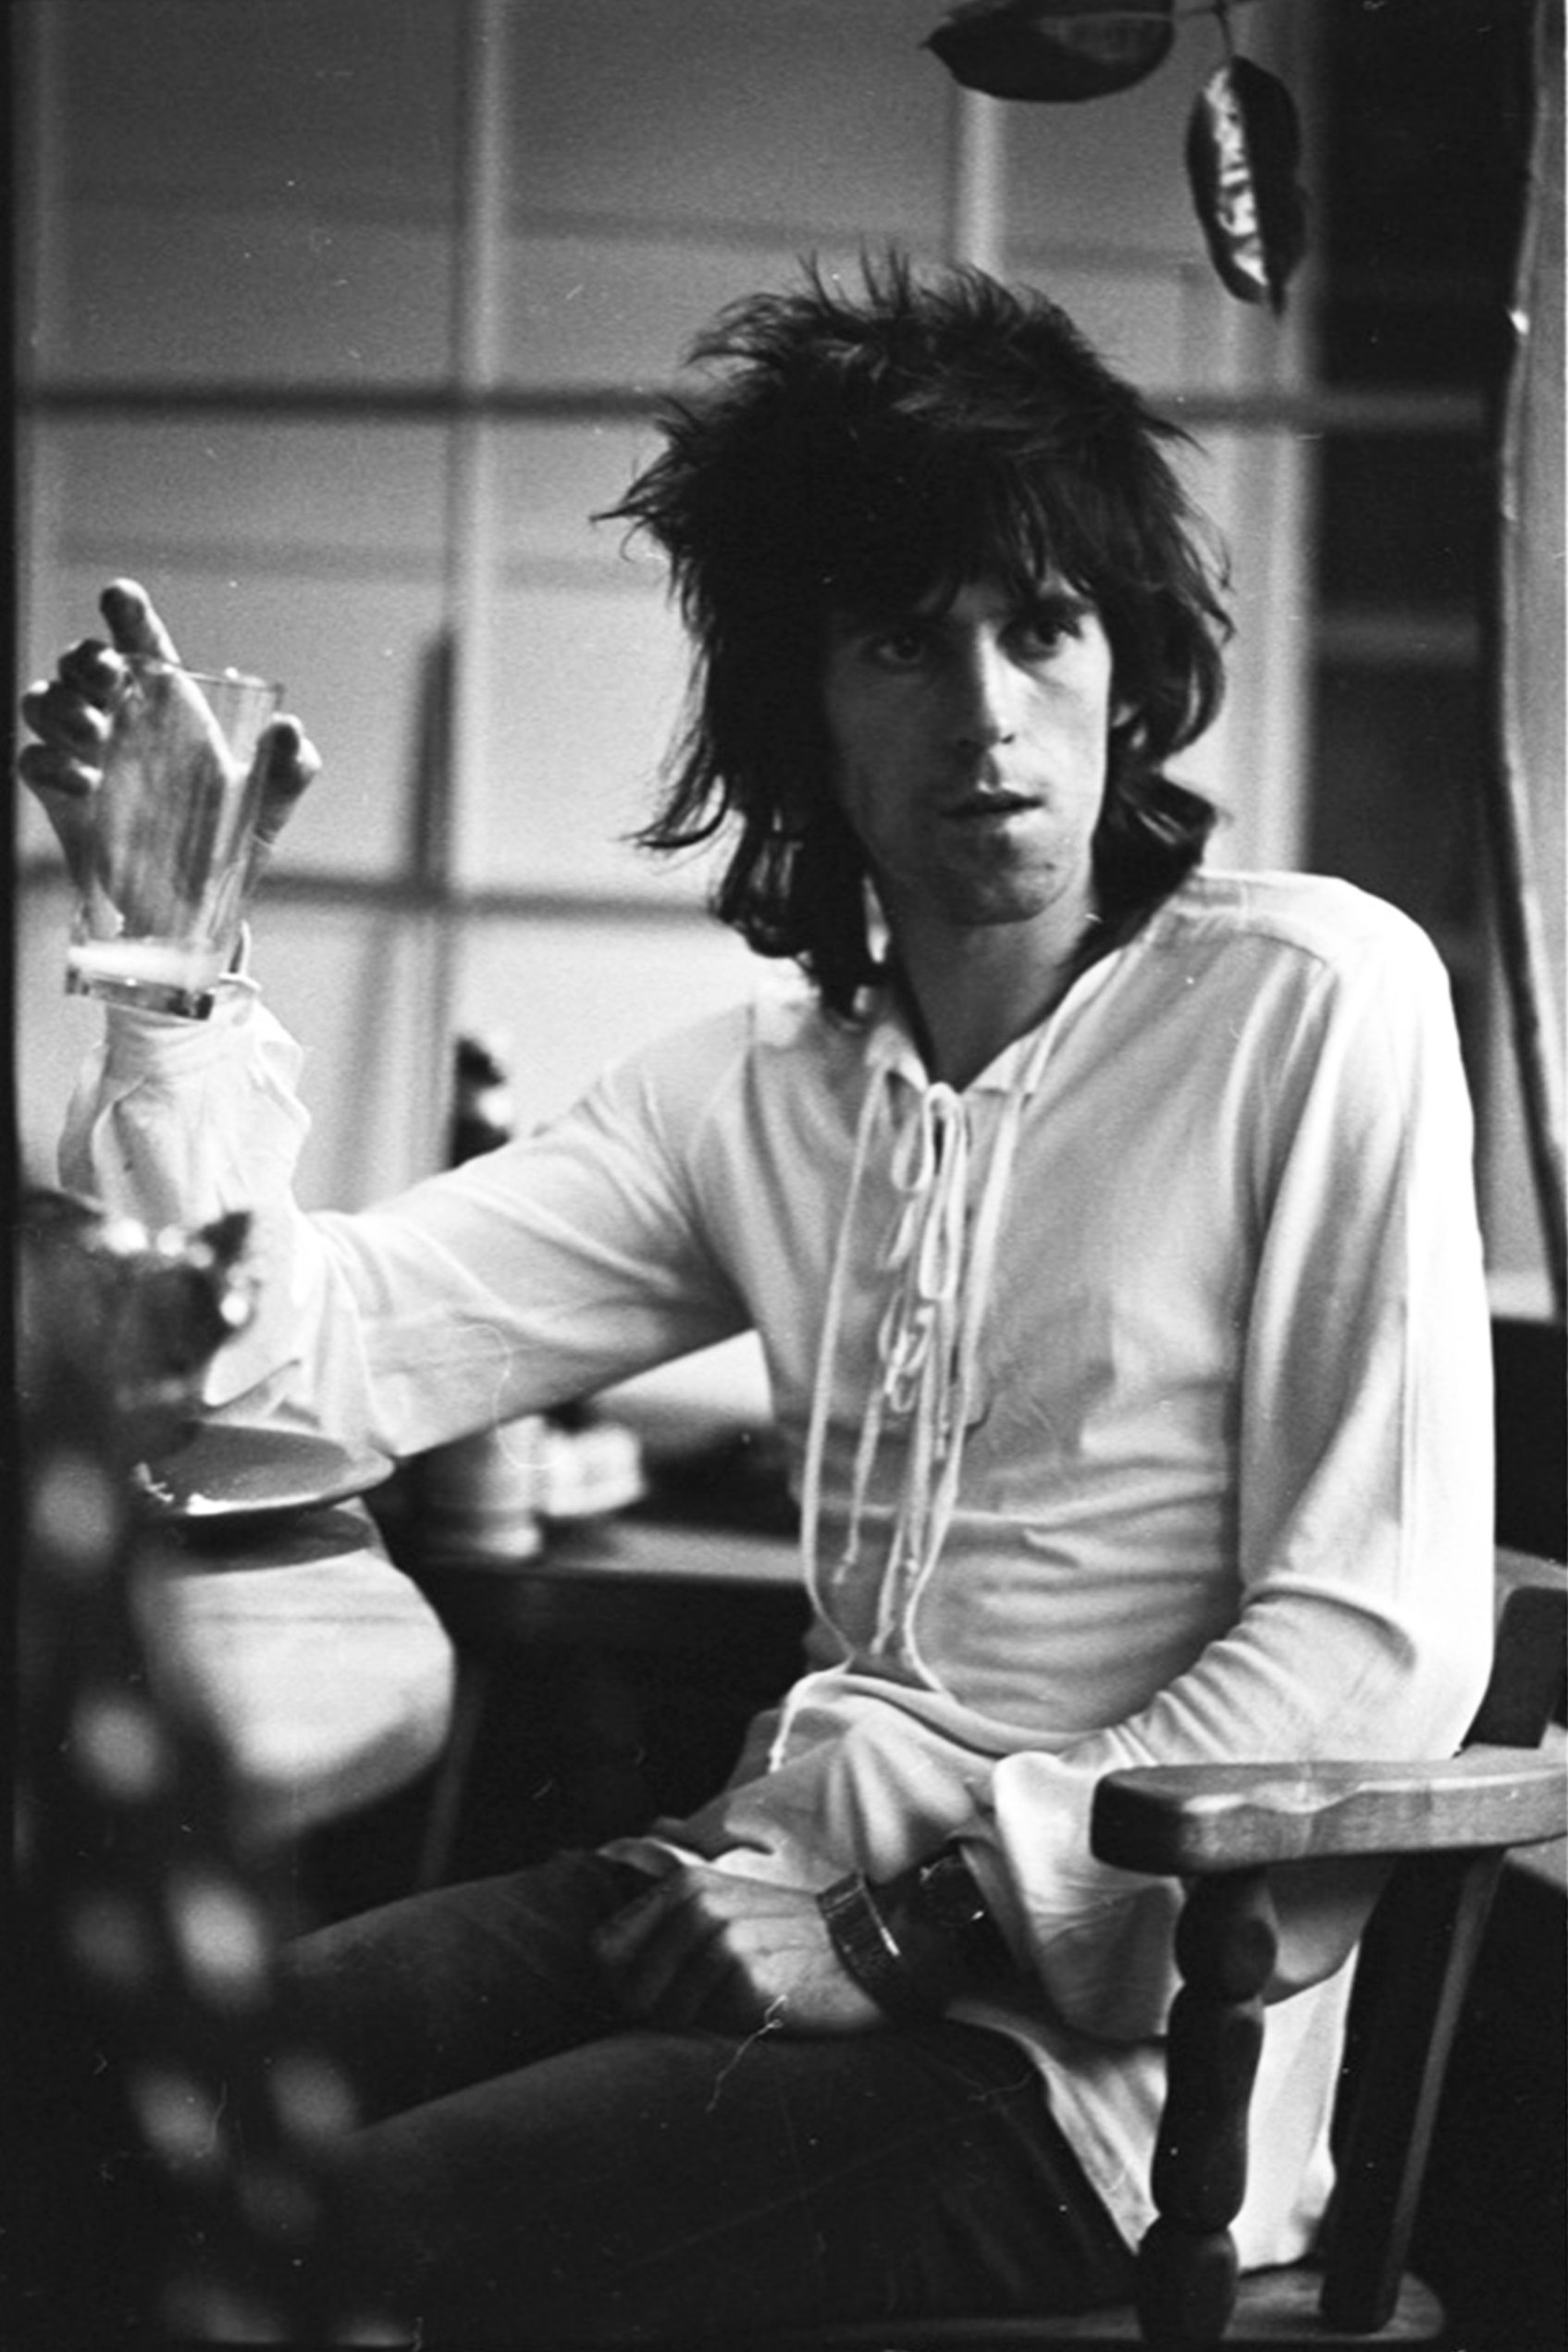 """You felt you were in the room . . . listening to exactly what went down in the studio, no frills, no nothing,"" wrote Keith Richards in his 2010 autobiography, Life."